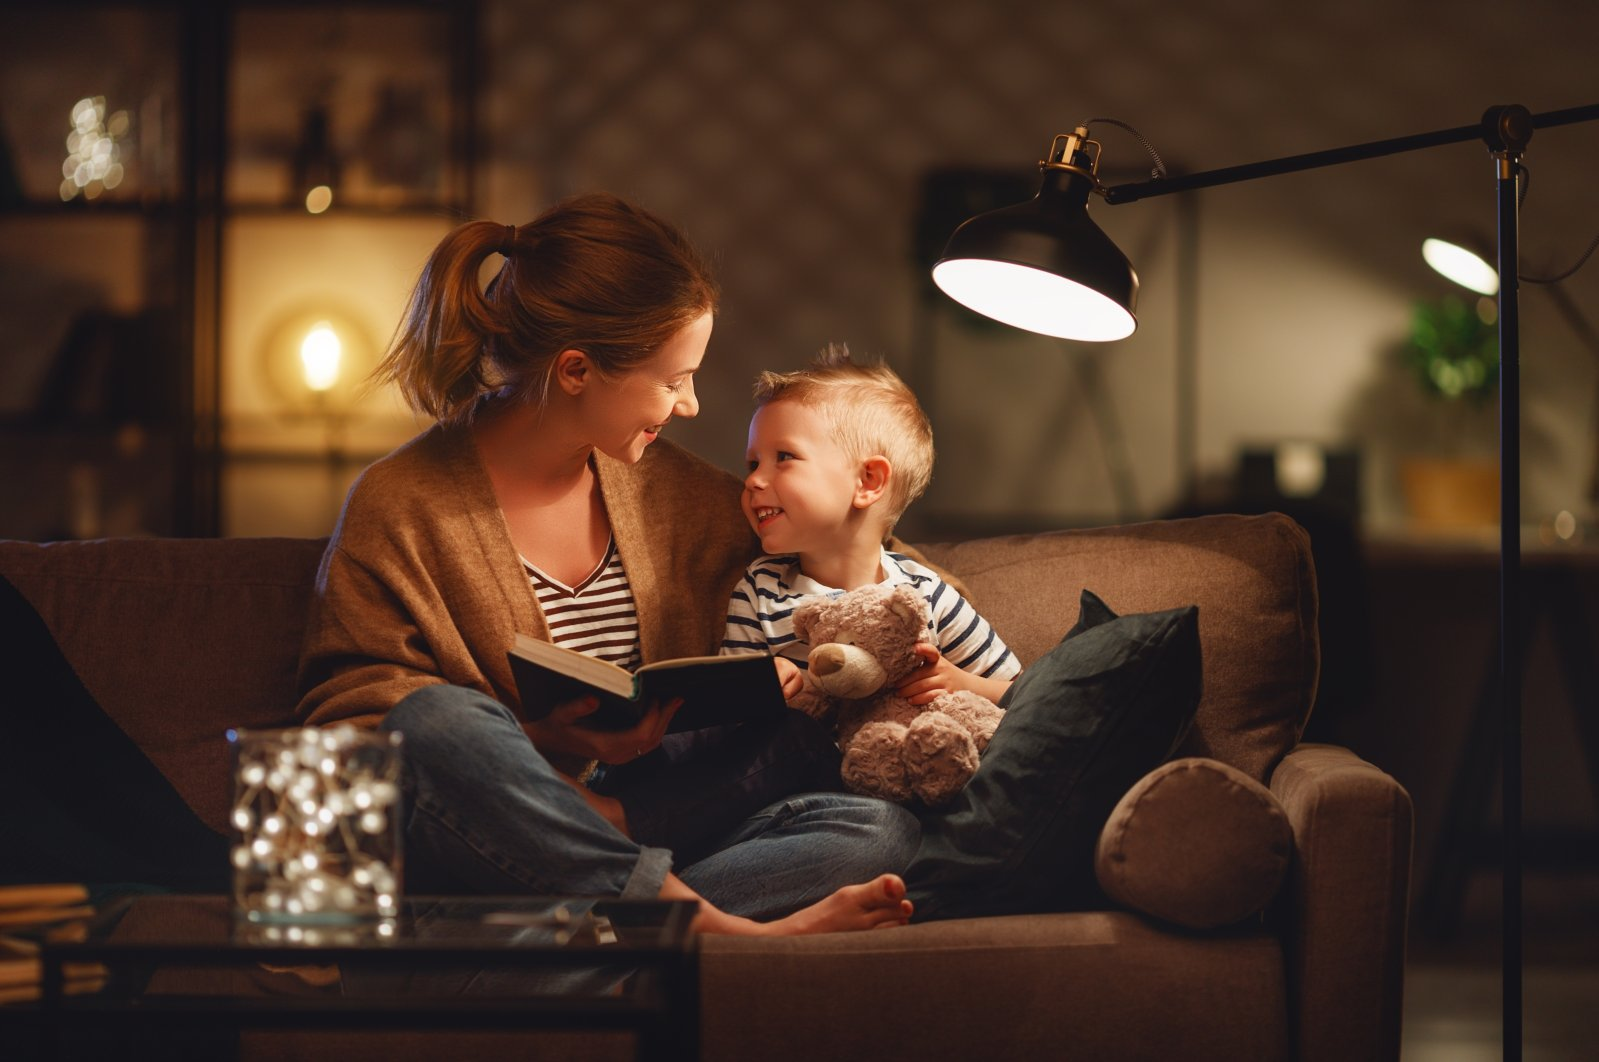 If you suspect your child has a speech delay, try looking at picture books together to encourage them to use their words. (Shutterstock Photo)